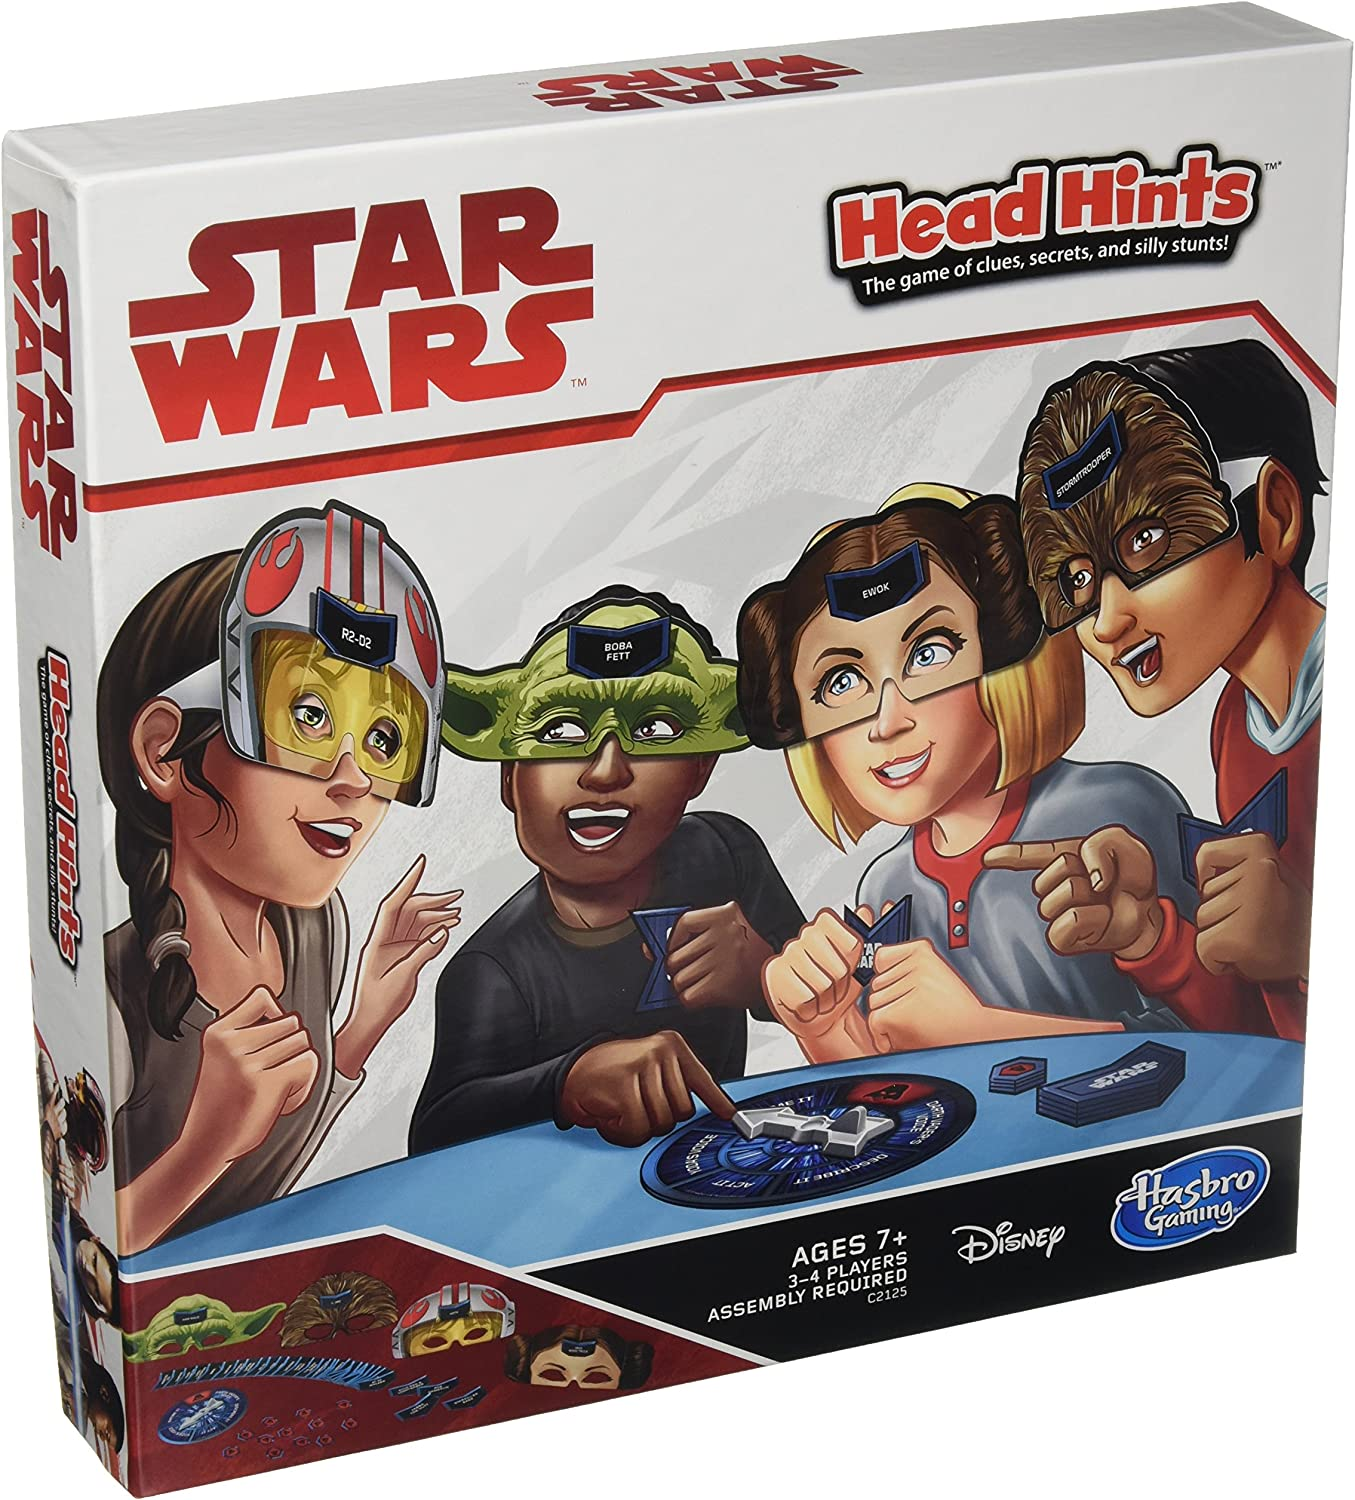 Hasbro Gaming Head Hints: Star Wars Edition